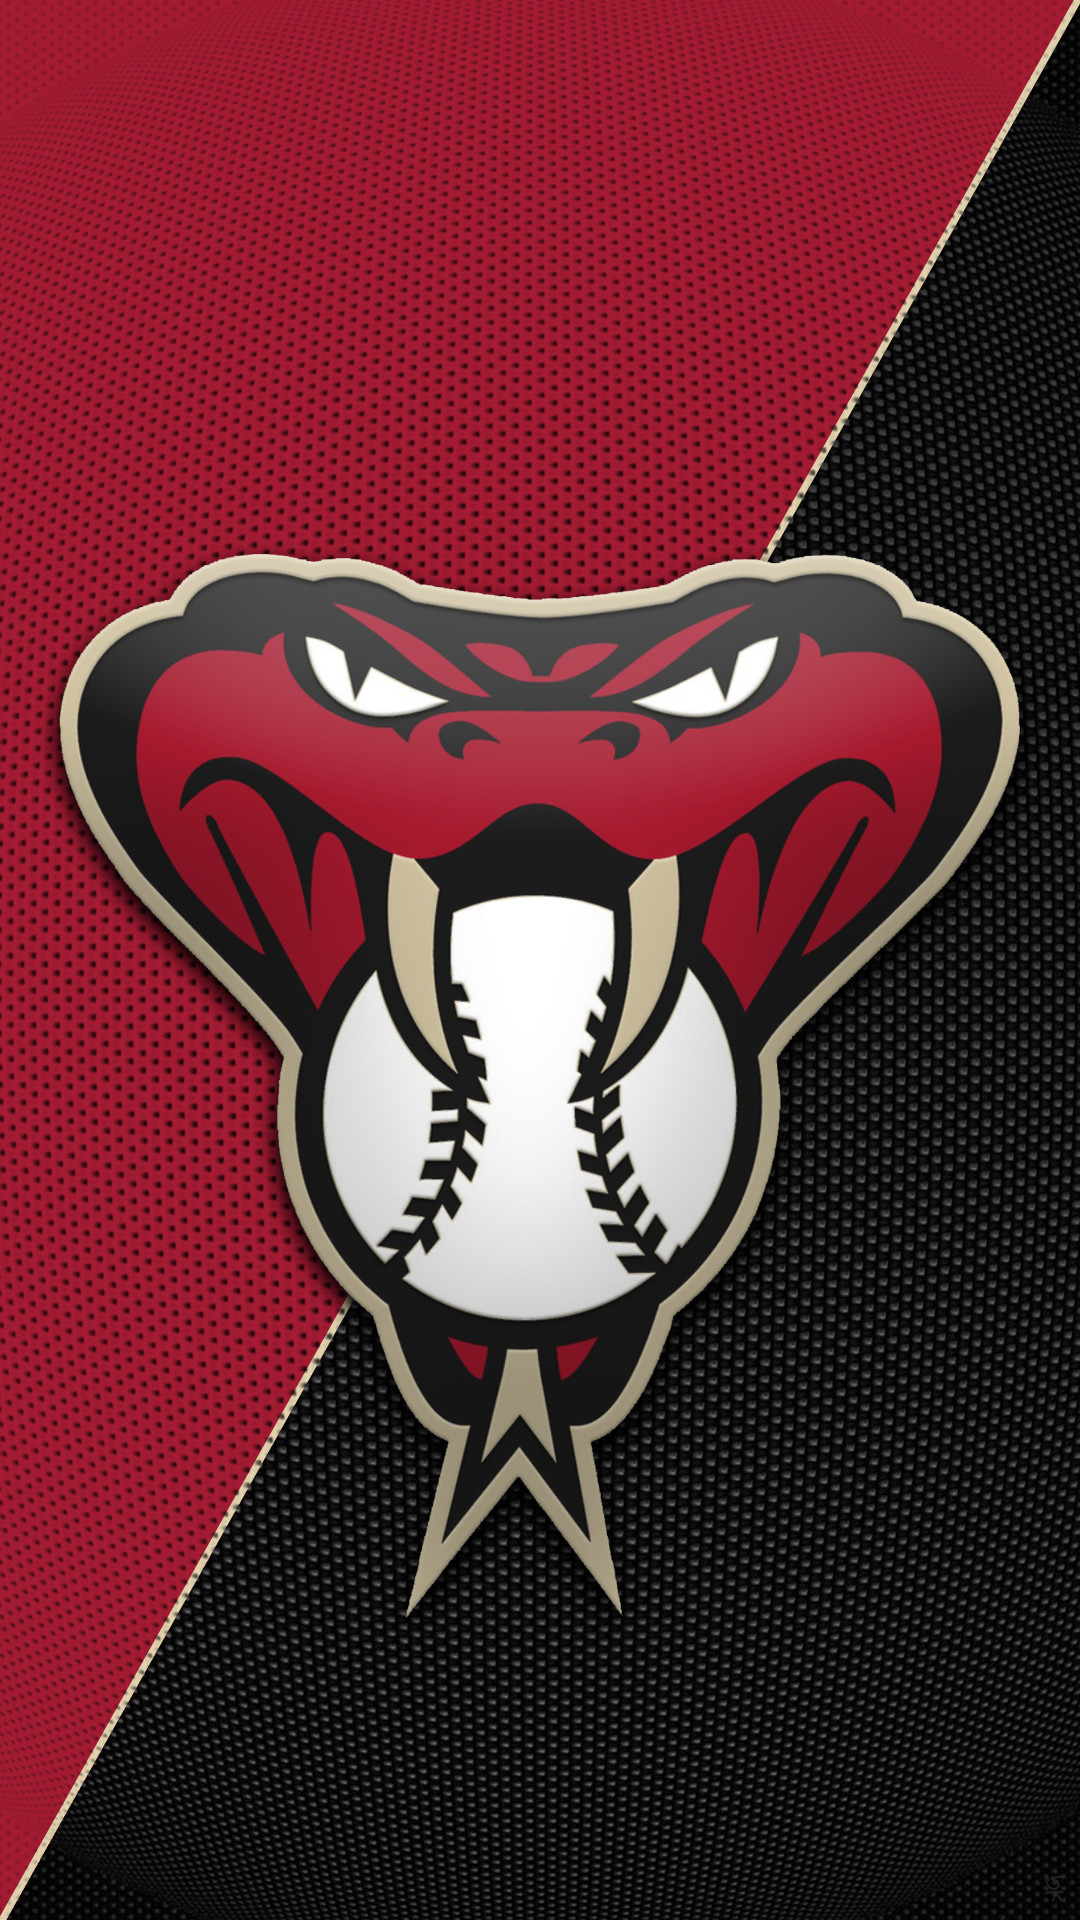 1080x1920 Hey Tigger can you make another Arizona Diamondbacks snakehead logo  wallpaper like you did before for me but in their old school colors of  copper/ teal ...